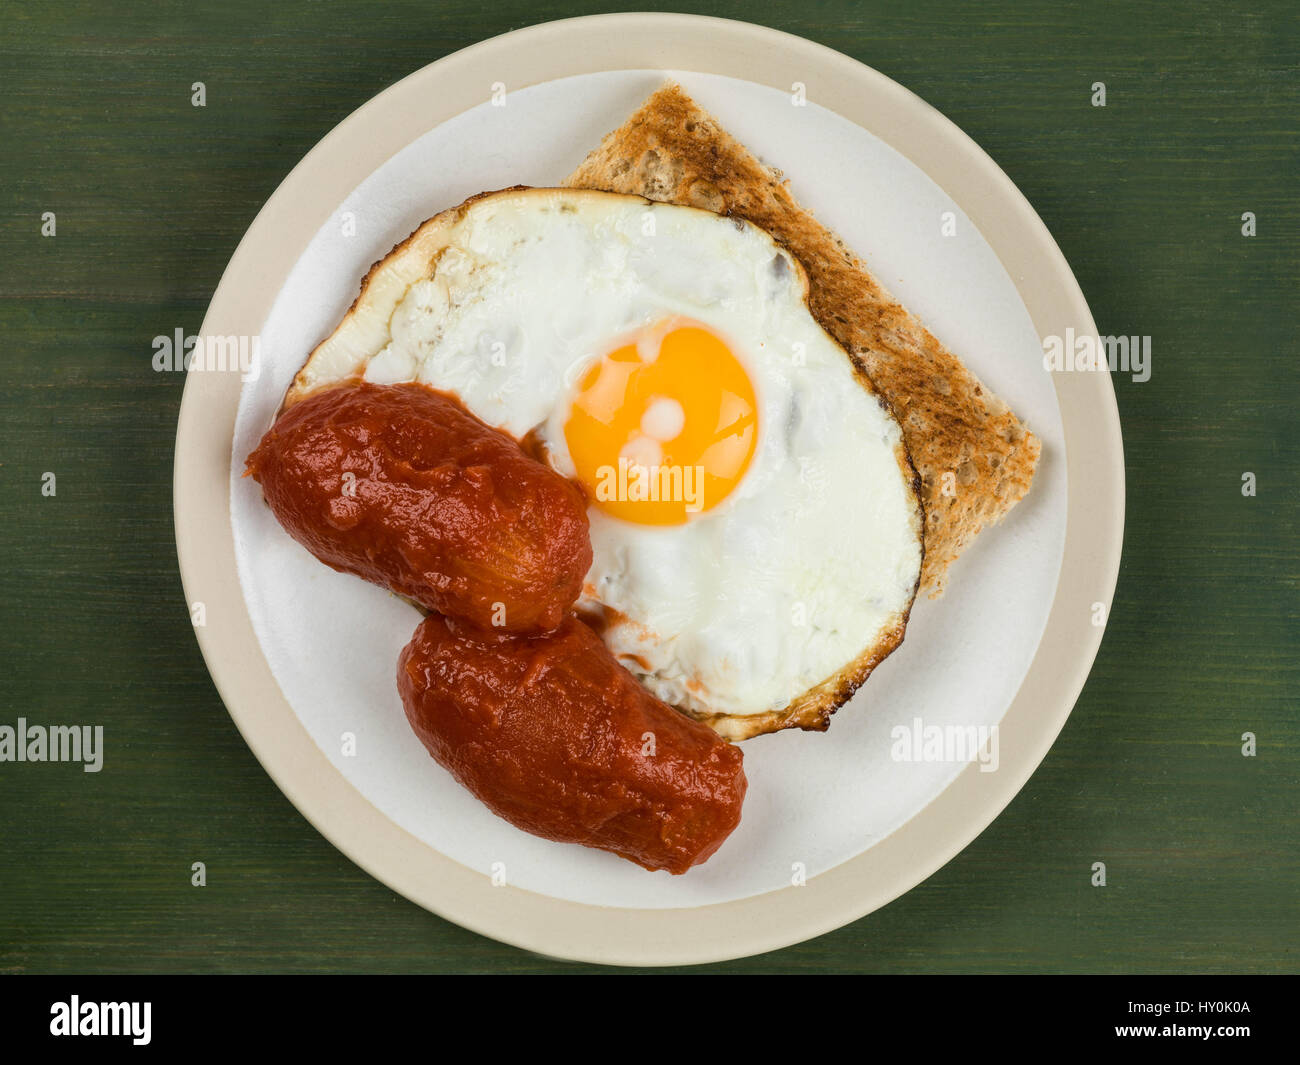 Fried Egg and Tomatoes on Toast on a Plate Against a Green Background Stock Photo